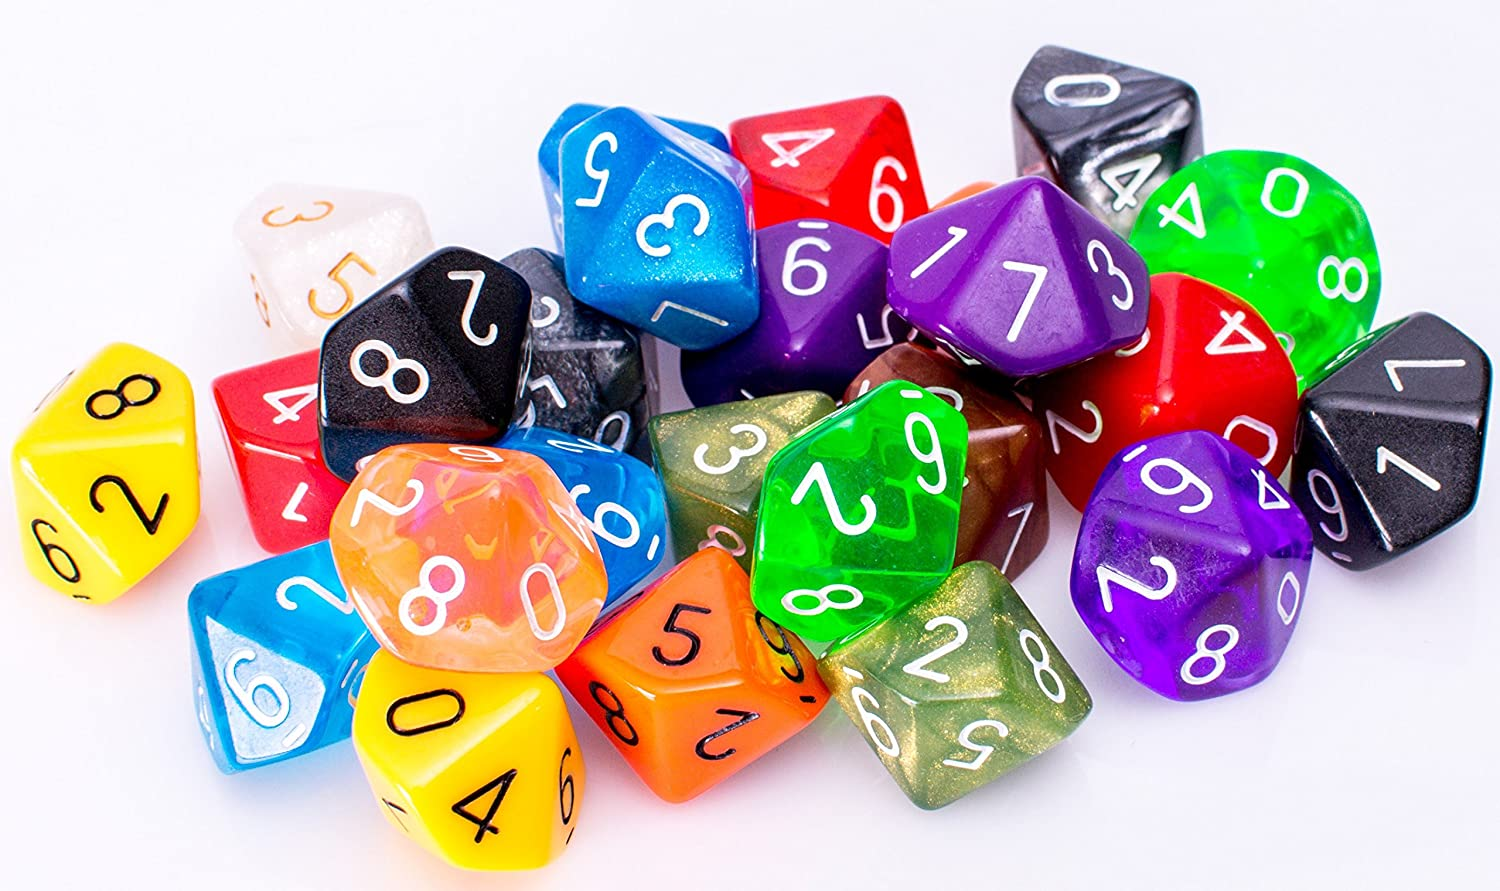 25 Count Assorted Pack of 10 Sided Dice - Multi Colored Assortment of D10 Polyhedral Dice Easy Roller Dice Company